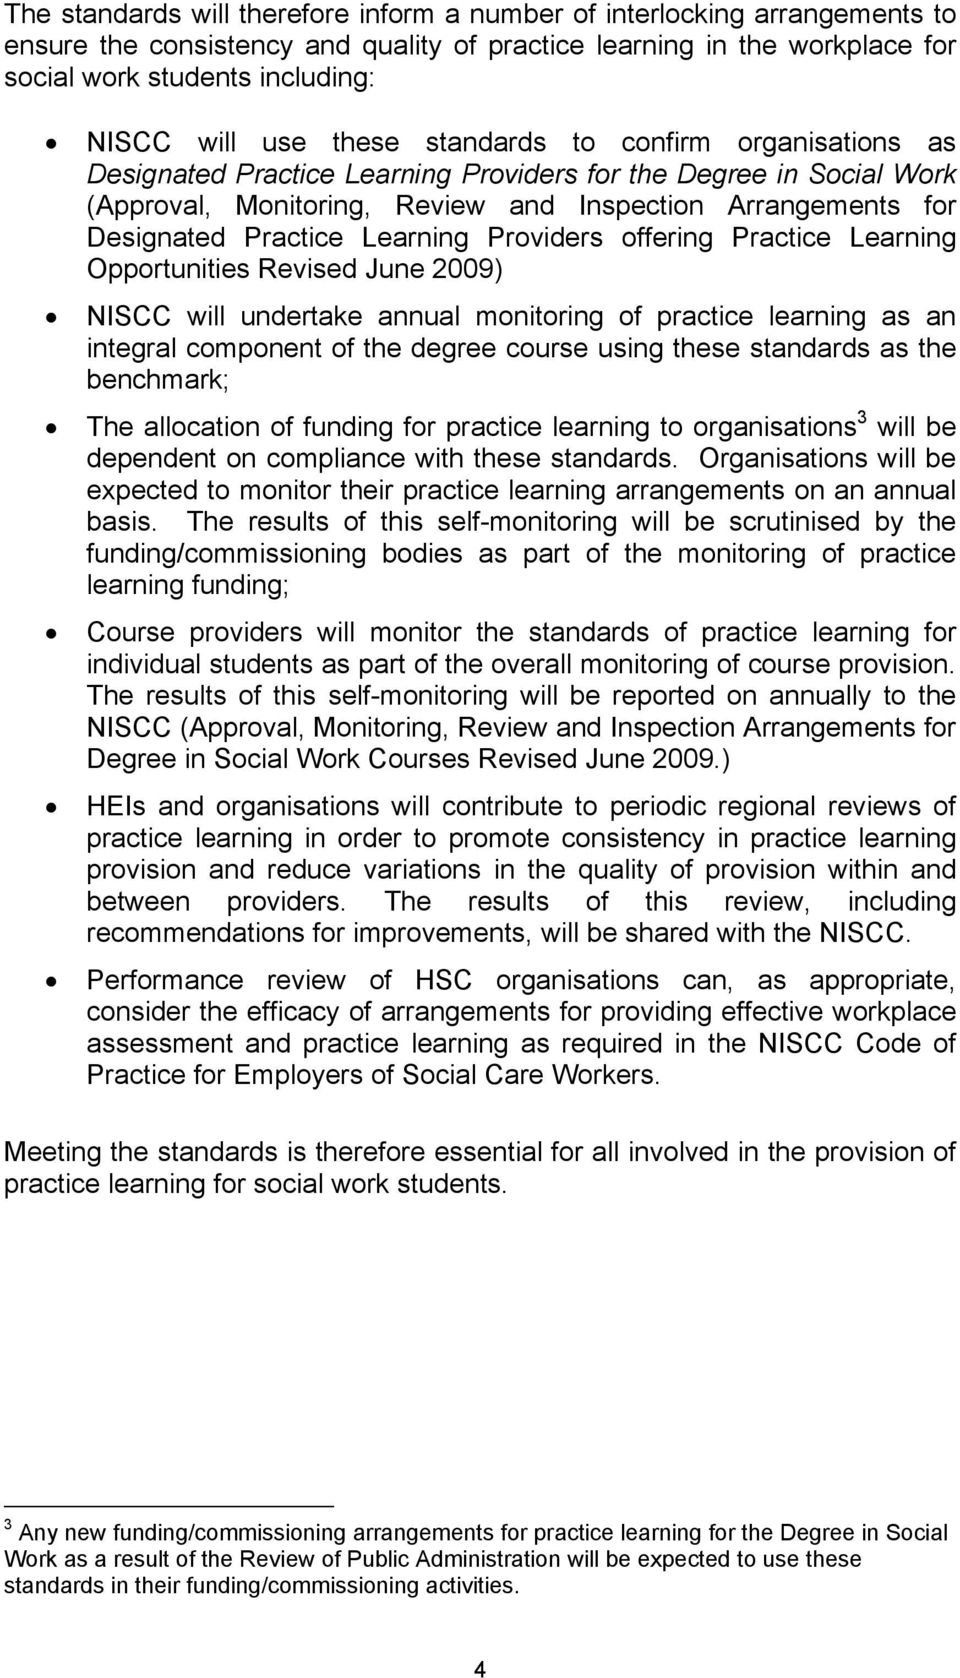 Learning Providers offering Practice Learning Opportunities Revised June 2009) NISCC will undertake annual monitoring of practice learning as an integral component of the degree course using these